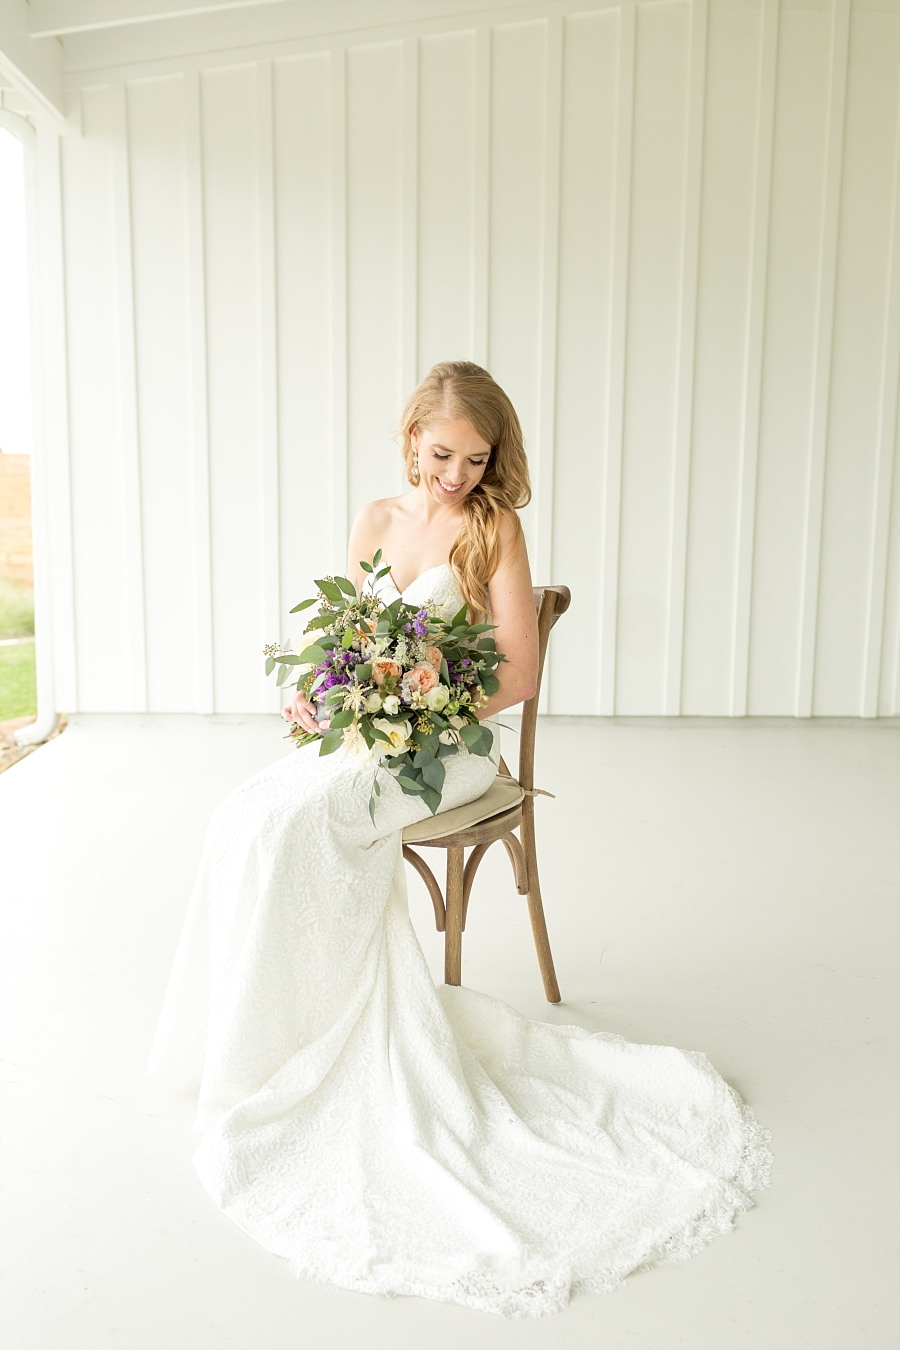 Stacy-Anderson-Photography-The-Farmhouse-Houston-Wedding-Photographer_0096.jpg